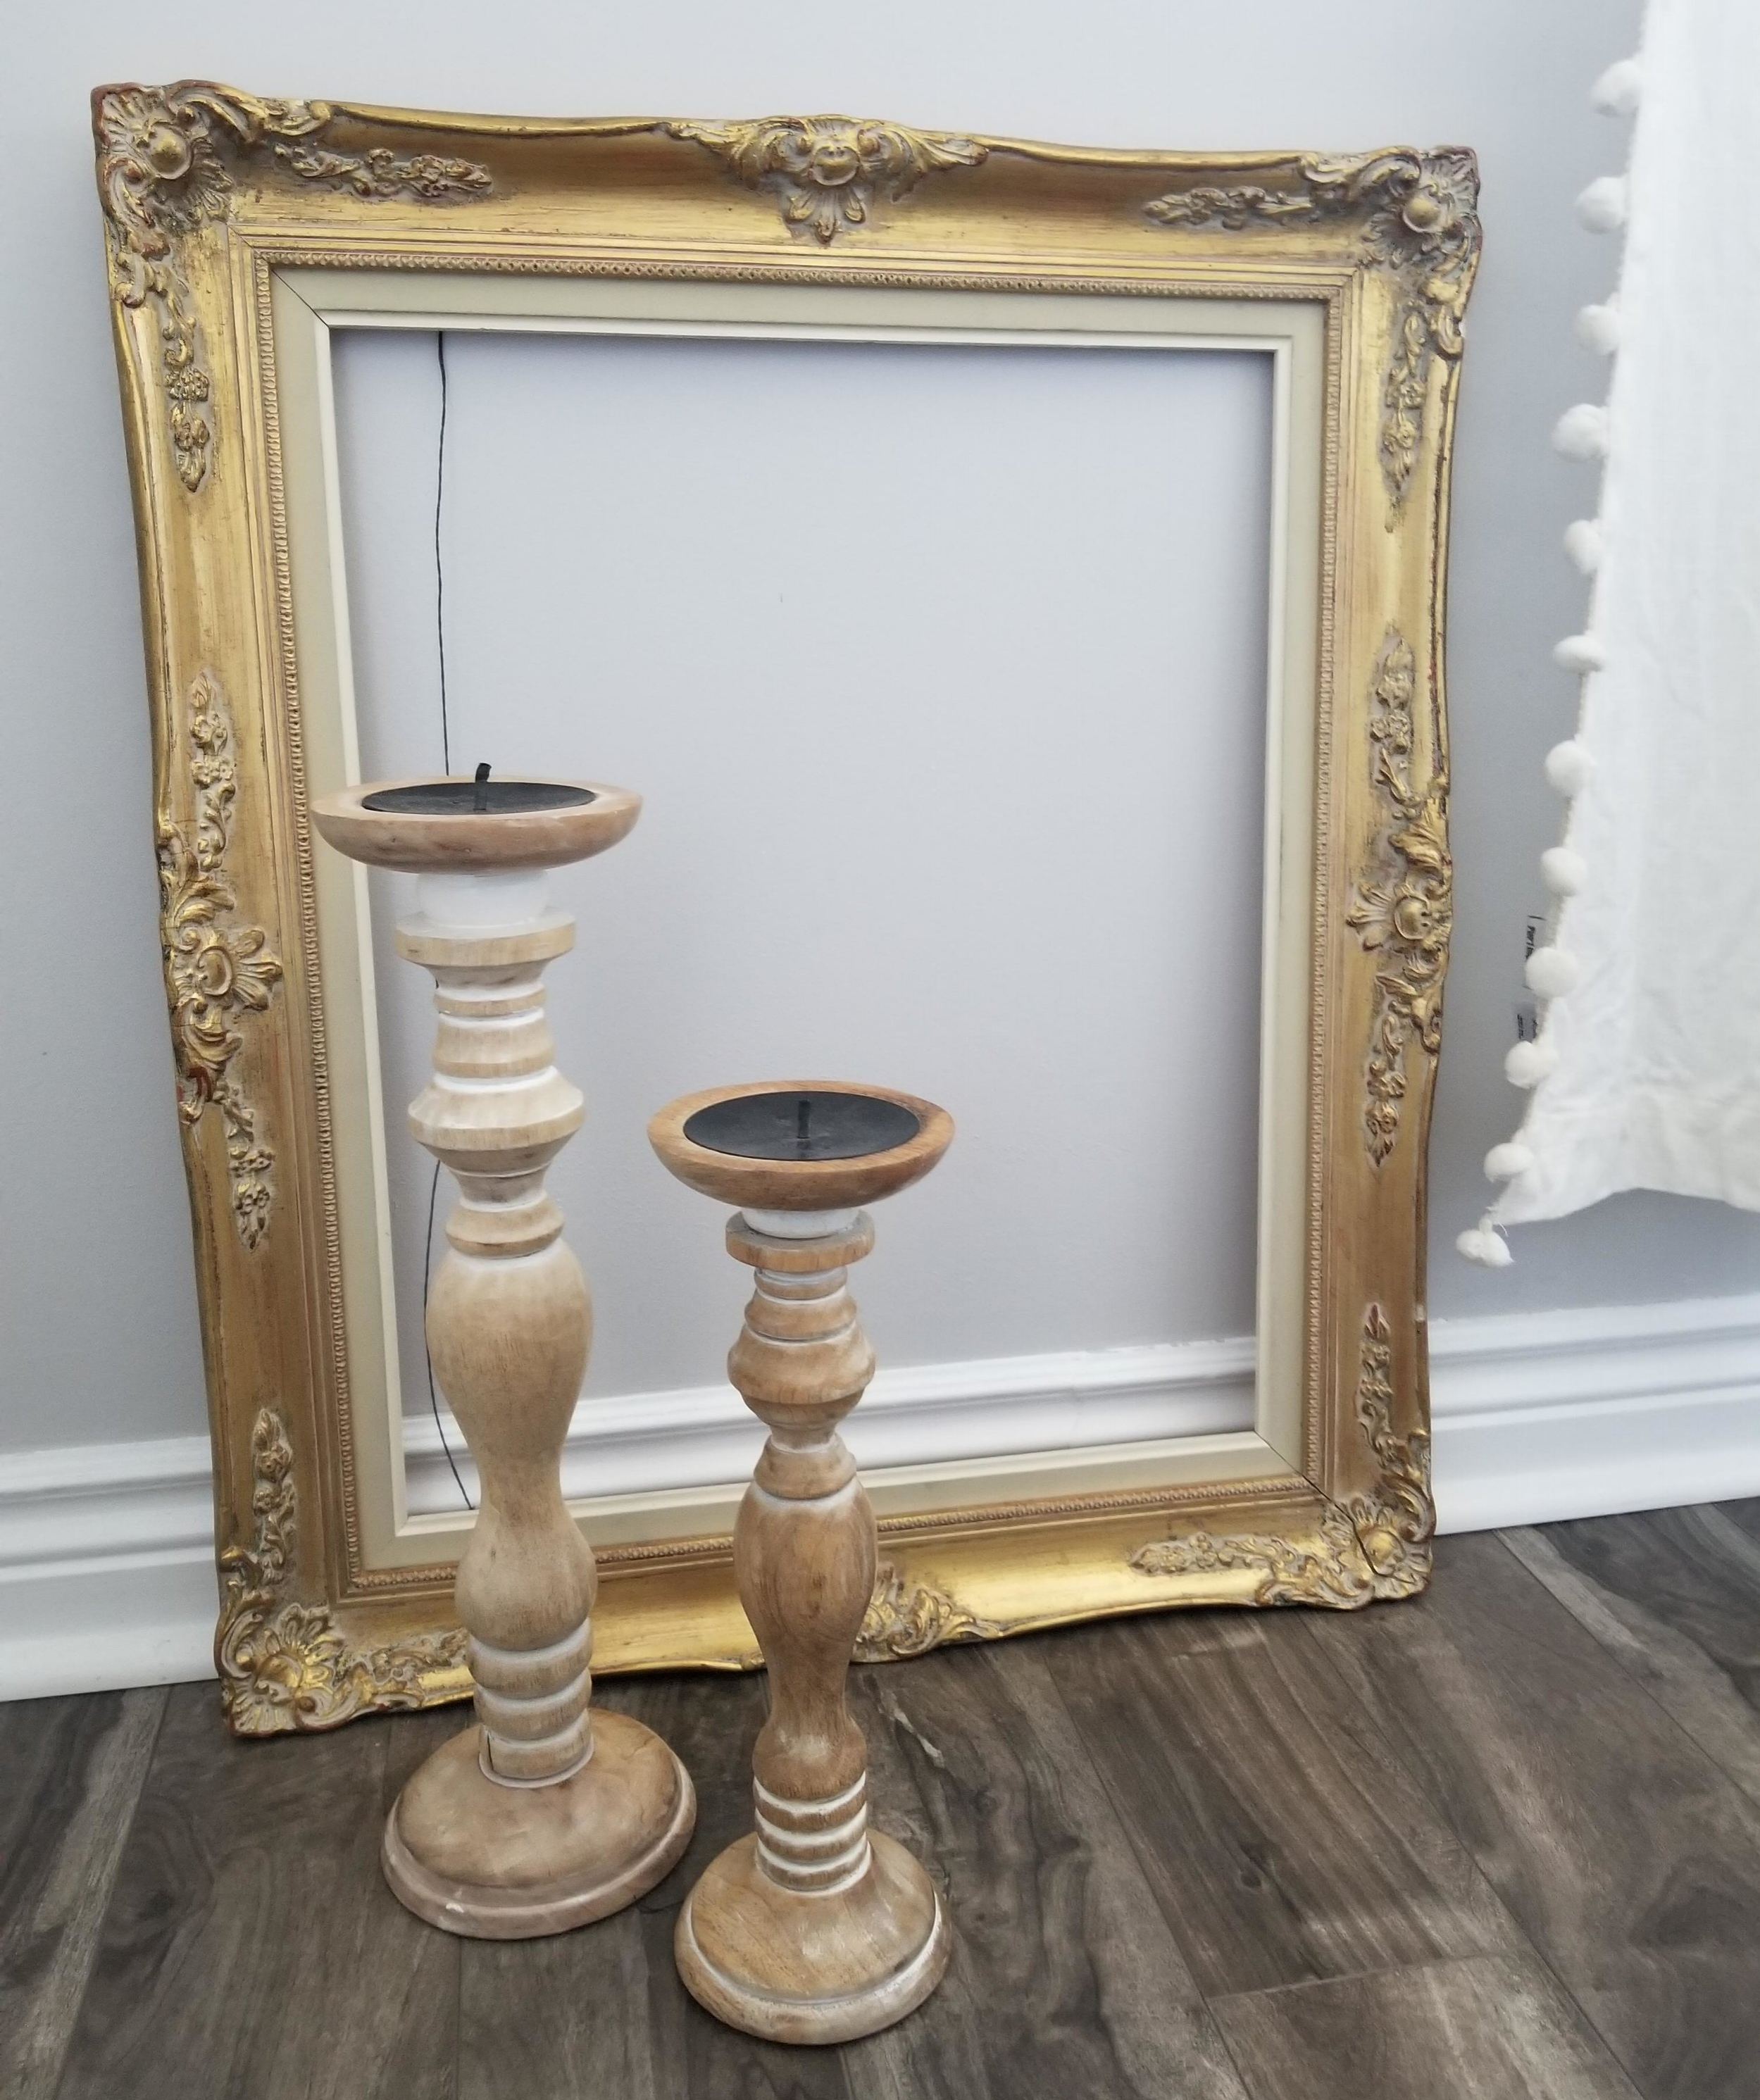 A gold vintage frame I found for $7, totally fell in love with it the minute that I saw it. Also these two candle holders for $3 each which such a steal. Love the rustic look of these.